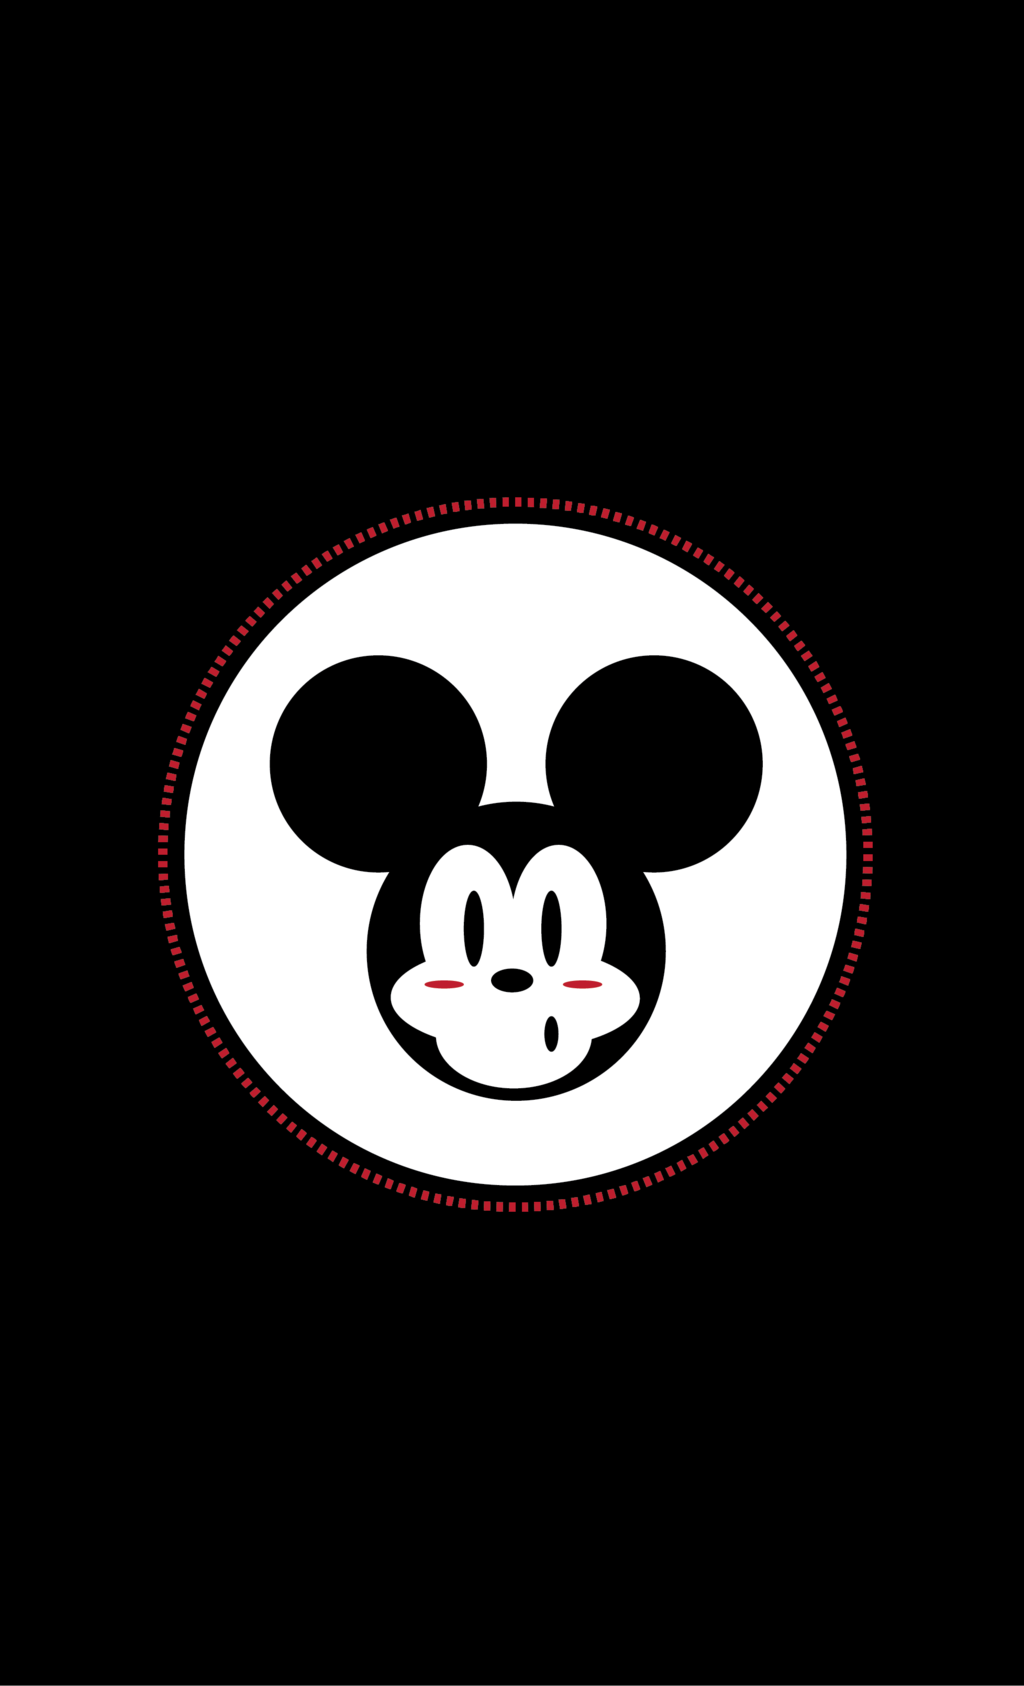 Mickey Mouse Wallpaper Tumblr